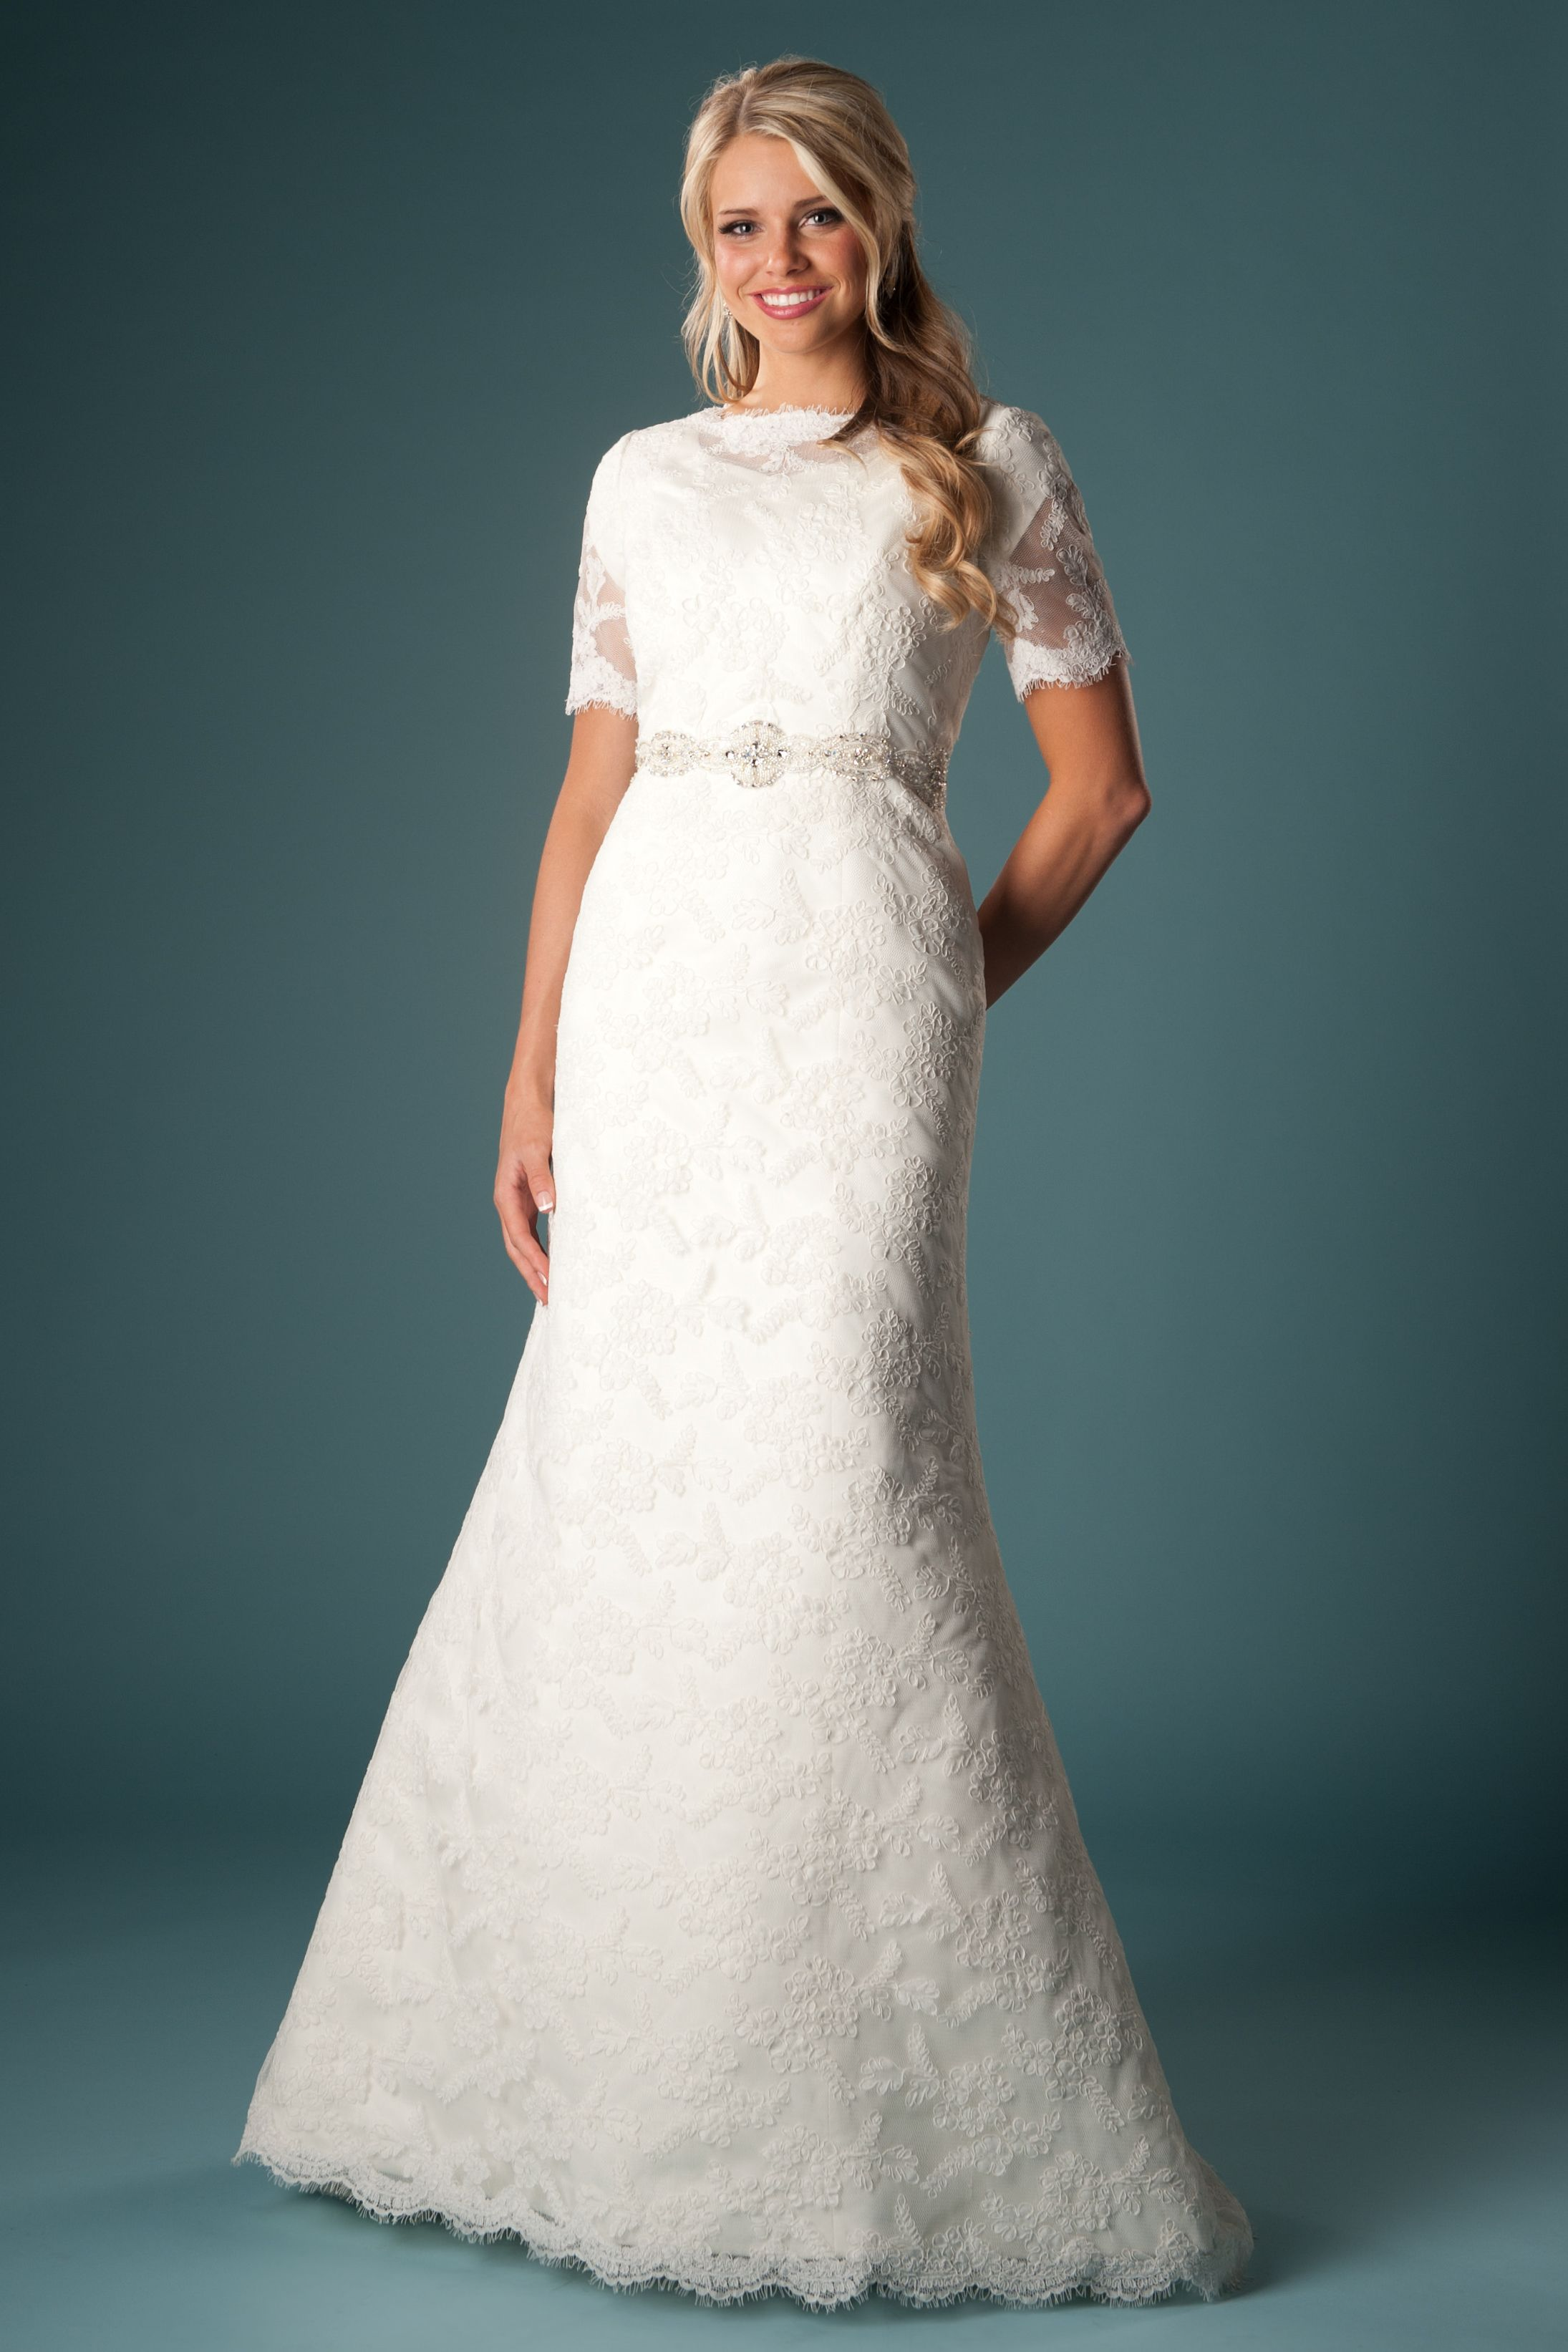 91d6517590ac Latter day bride! Finally! Dresses that I like that fit my standards ...